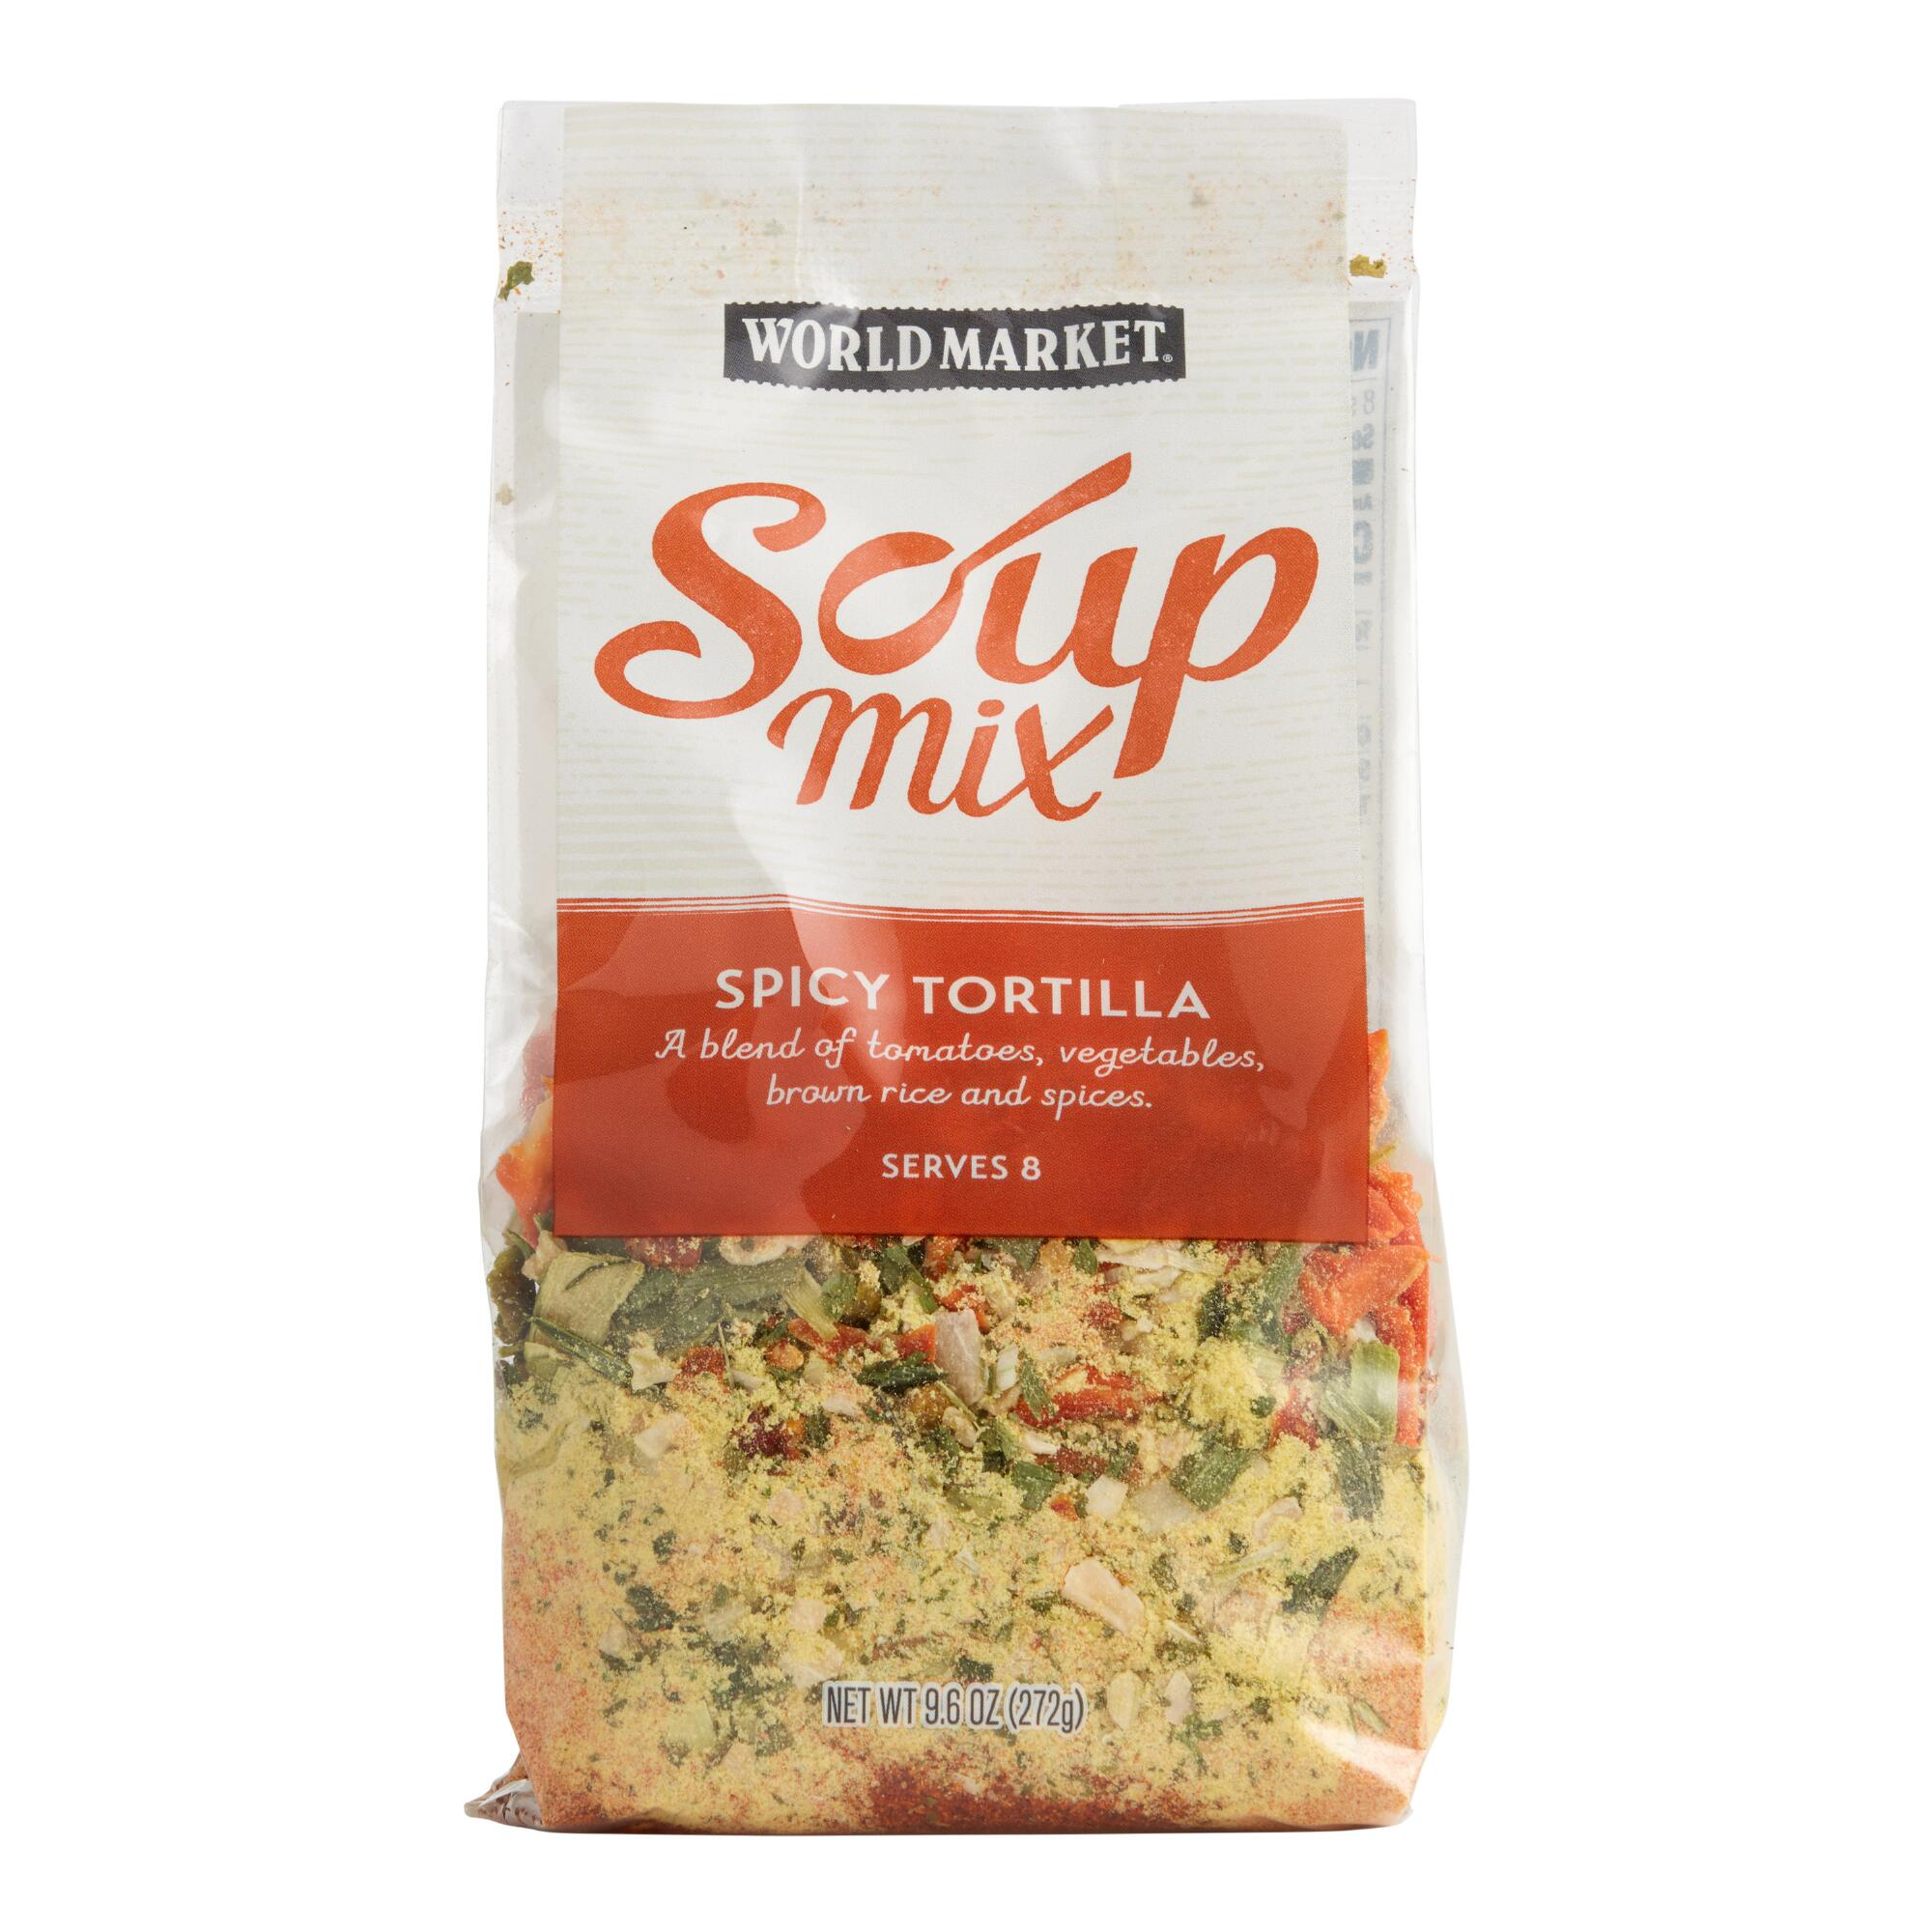 World Market® Spicy Tortilla Soup Mix Set of 2 by World Market